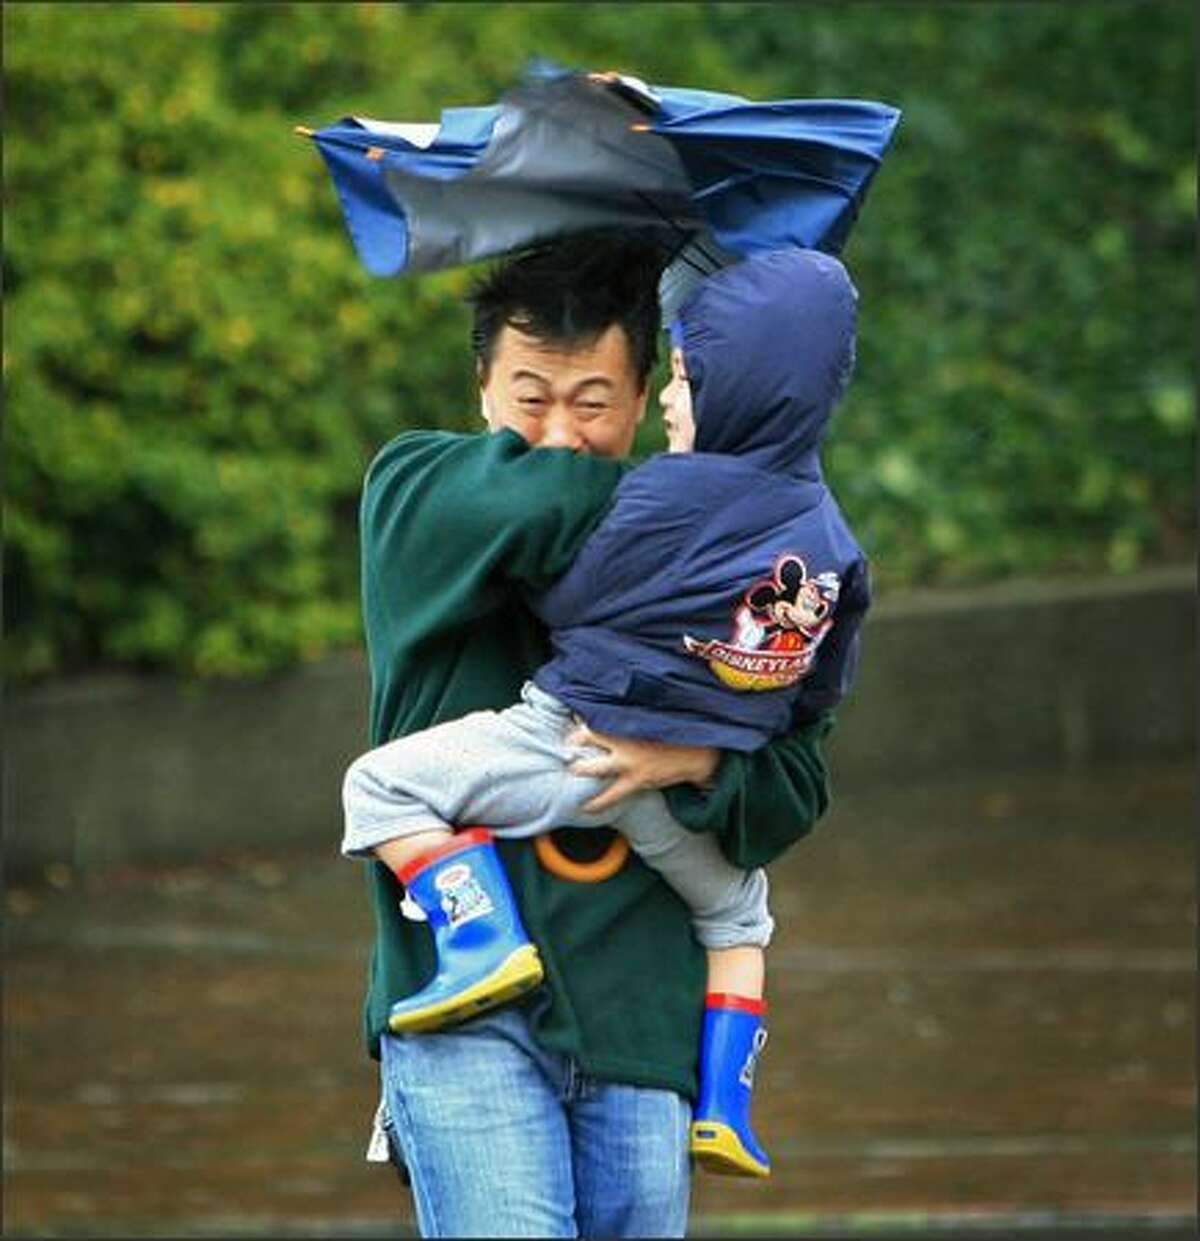 As a gust of wind strikes, Kevin Lee of Bellevue hangs onto his 3-year-old son Casey and his umbrella while waiting to cross Alaskan Way on the way to the Seattle Aquarium.